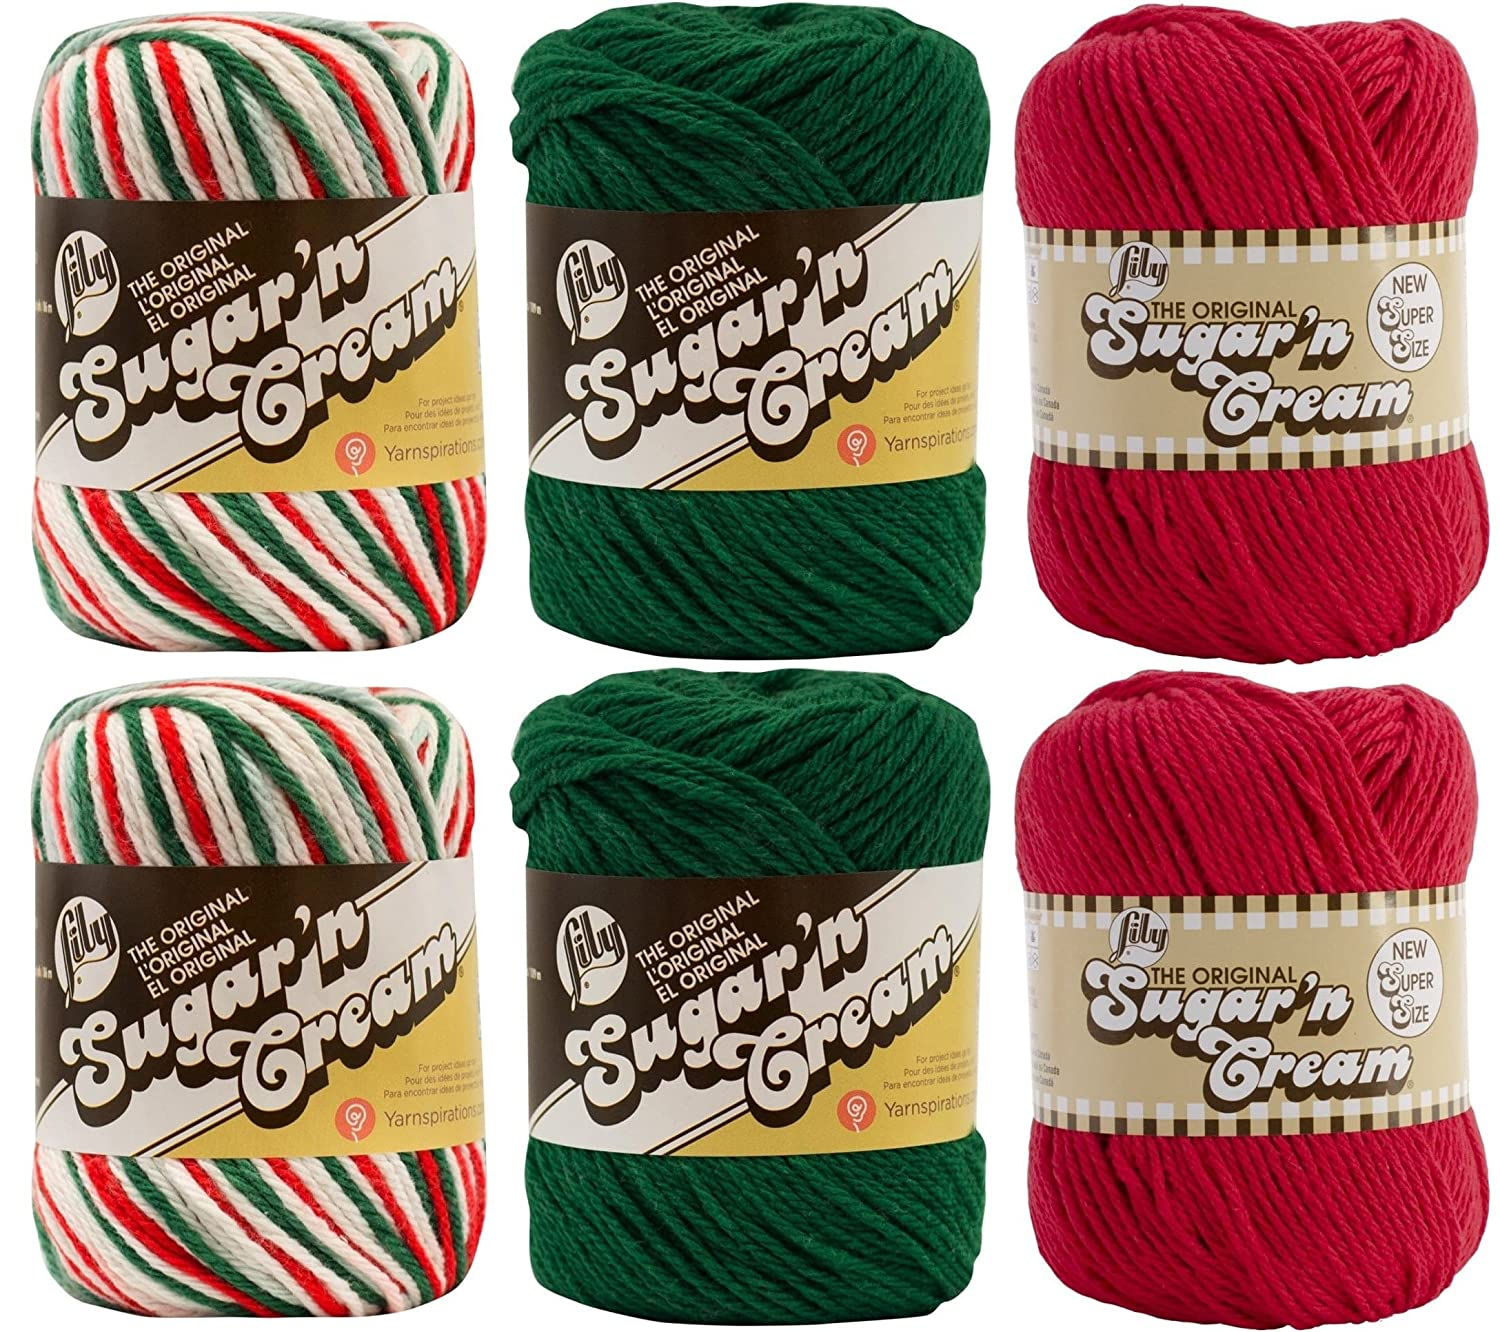 Variety Assortment Lily Sugar'n Cream Yarn 100% Cotton Solids and Ombres Holiday Bundle (6-Pack) Medium #4 Worsted Spinrite® 4336926709